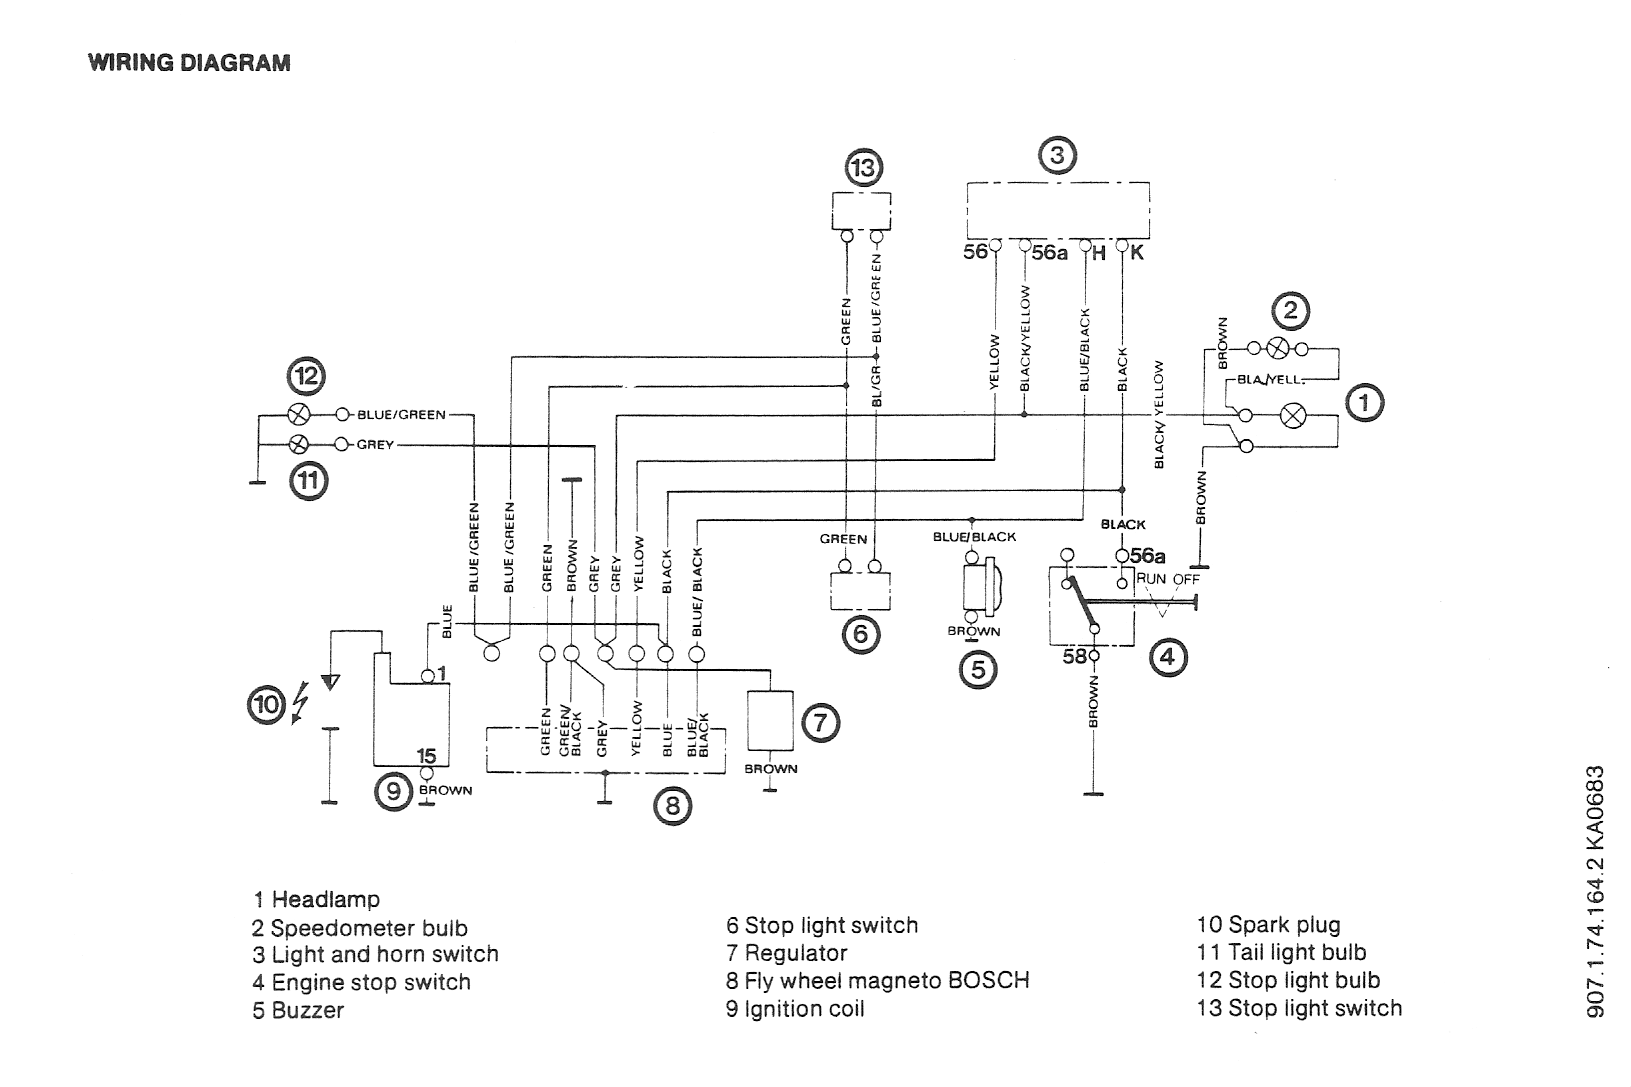 Pagsta Mini Chopper Wiring Diagram Free Image Wiring Diagram